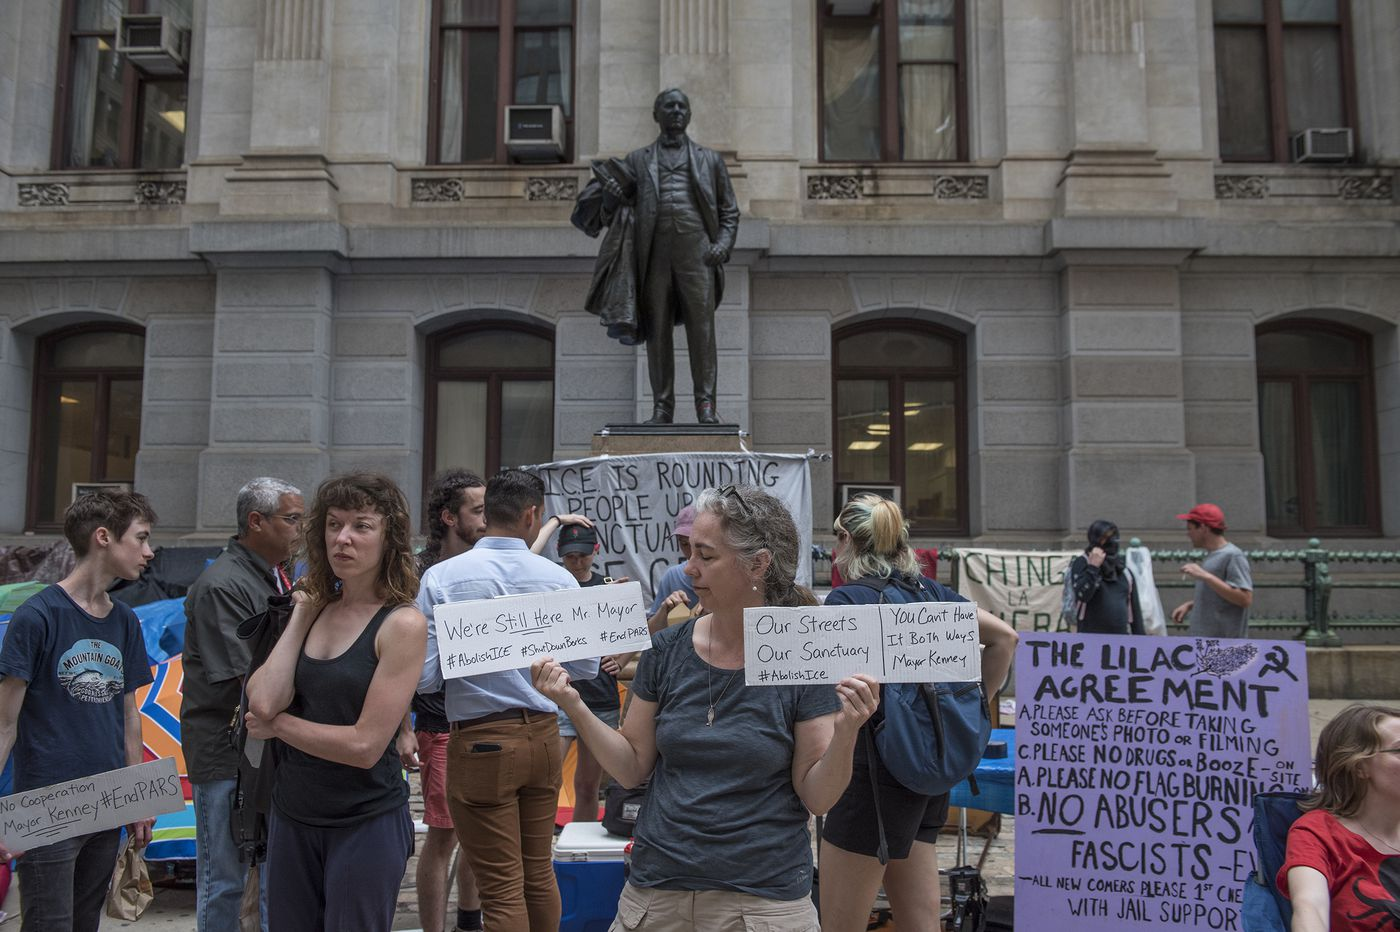 For 'Abolish ICE' protesters and the targets of their ire, what's next?